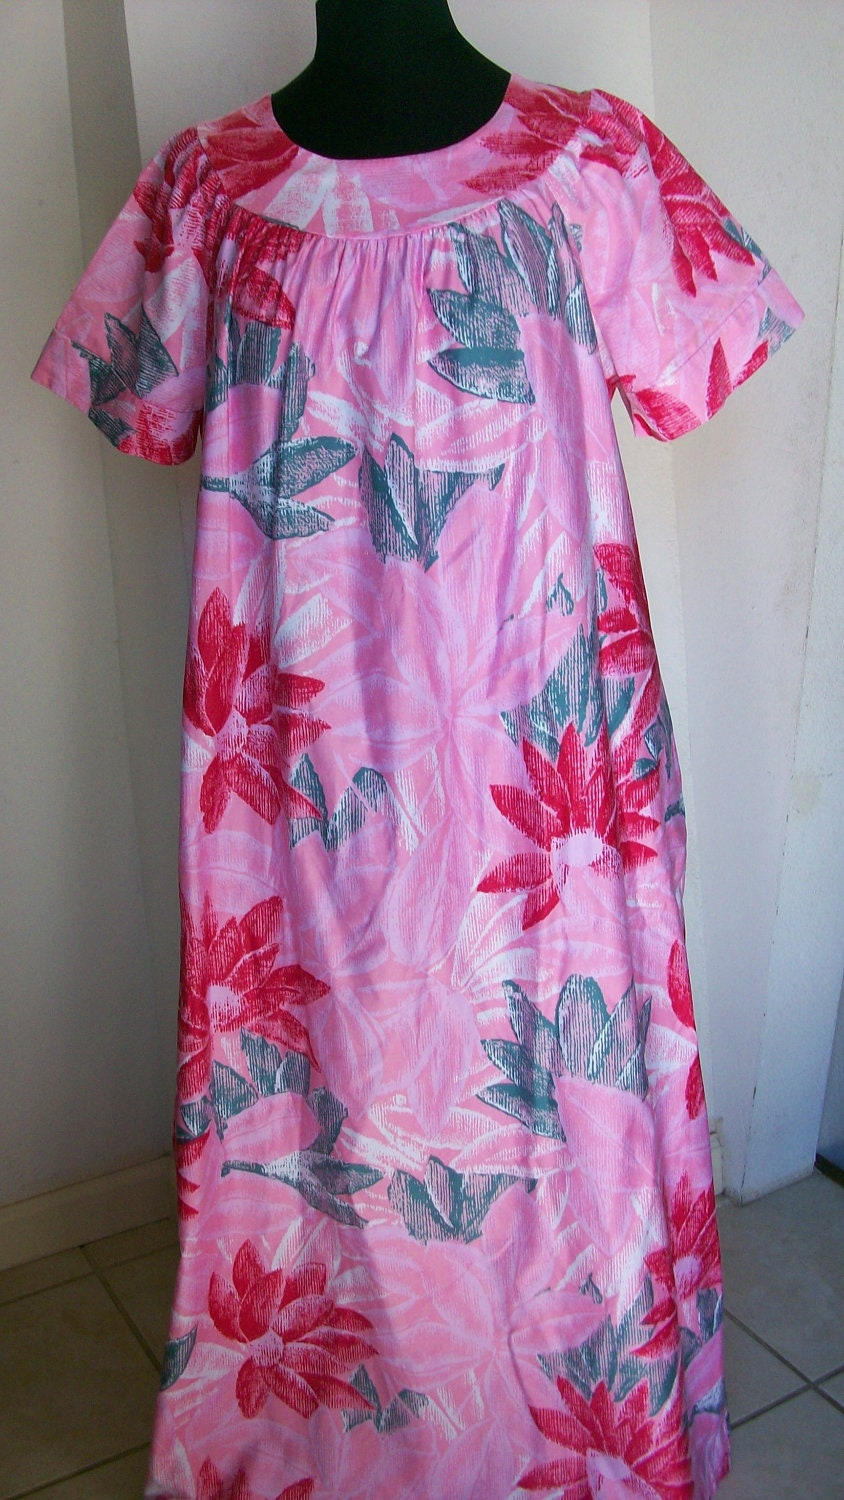 Pink floral hawaiian mumu long dress by sears size large for Sears dress shirts sale